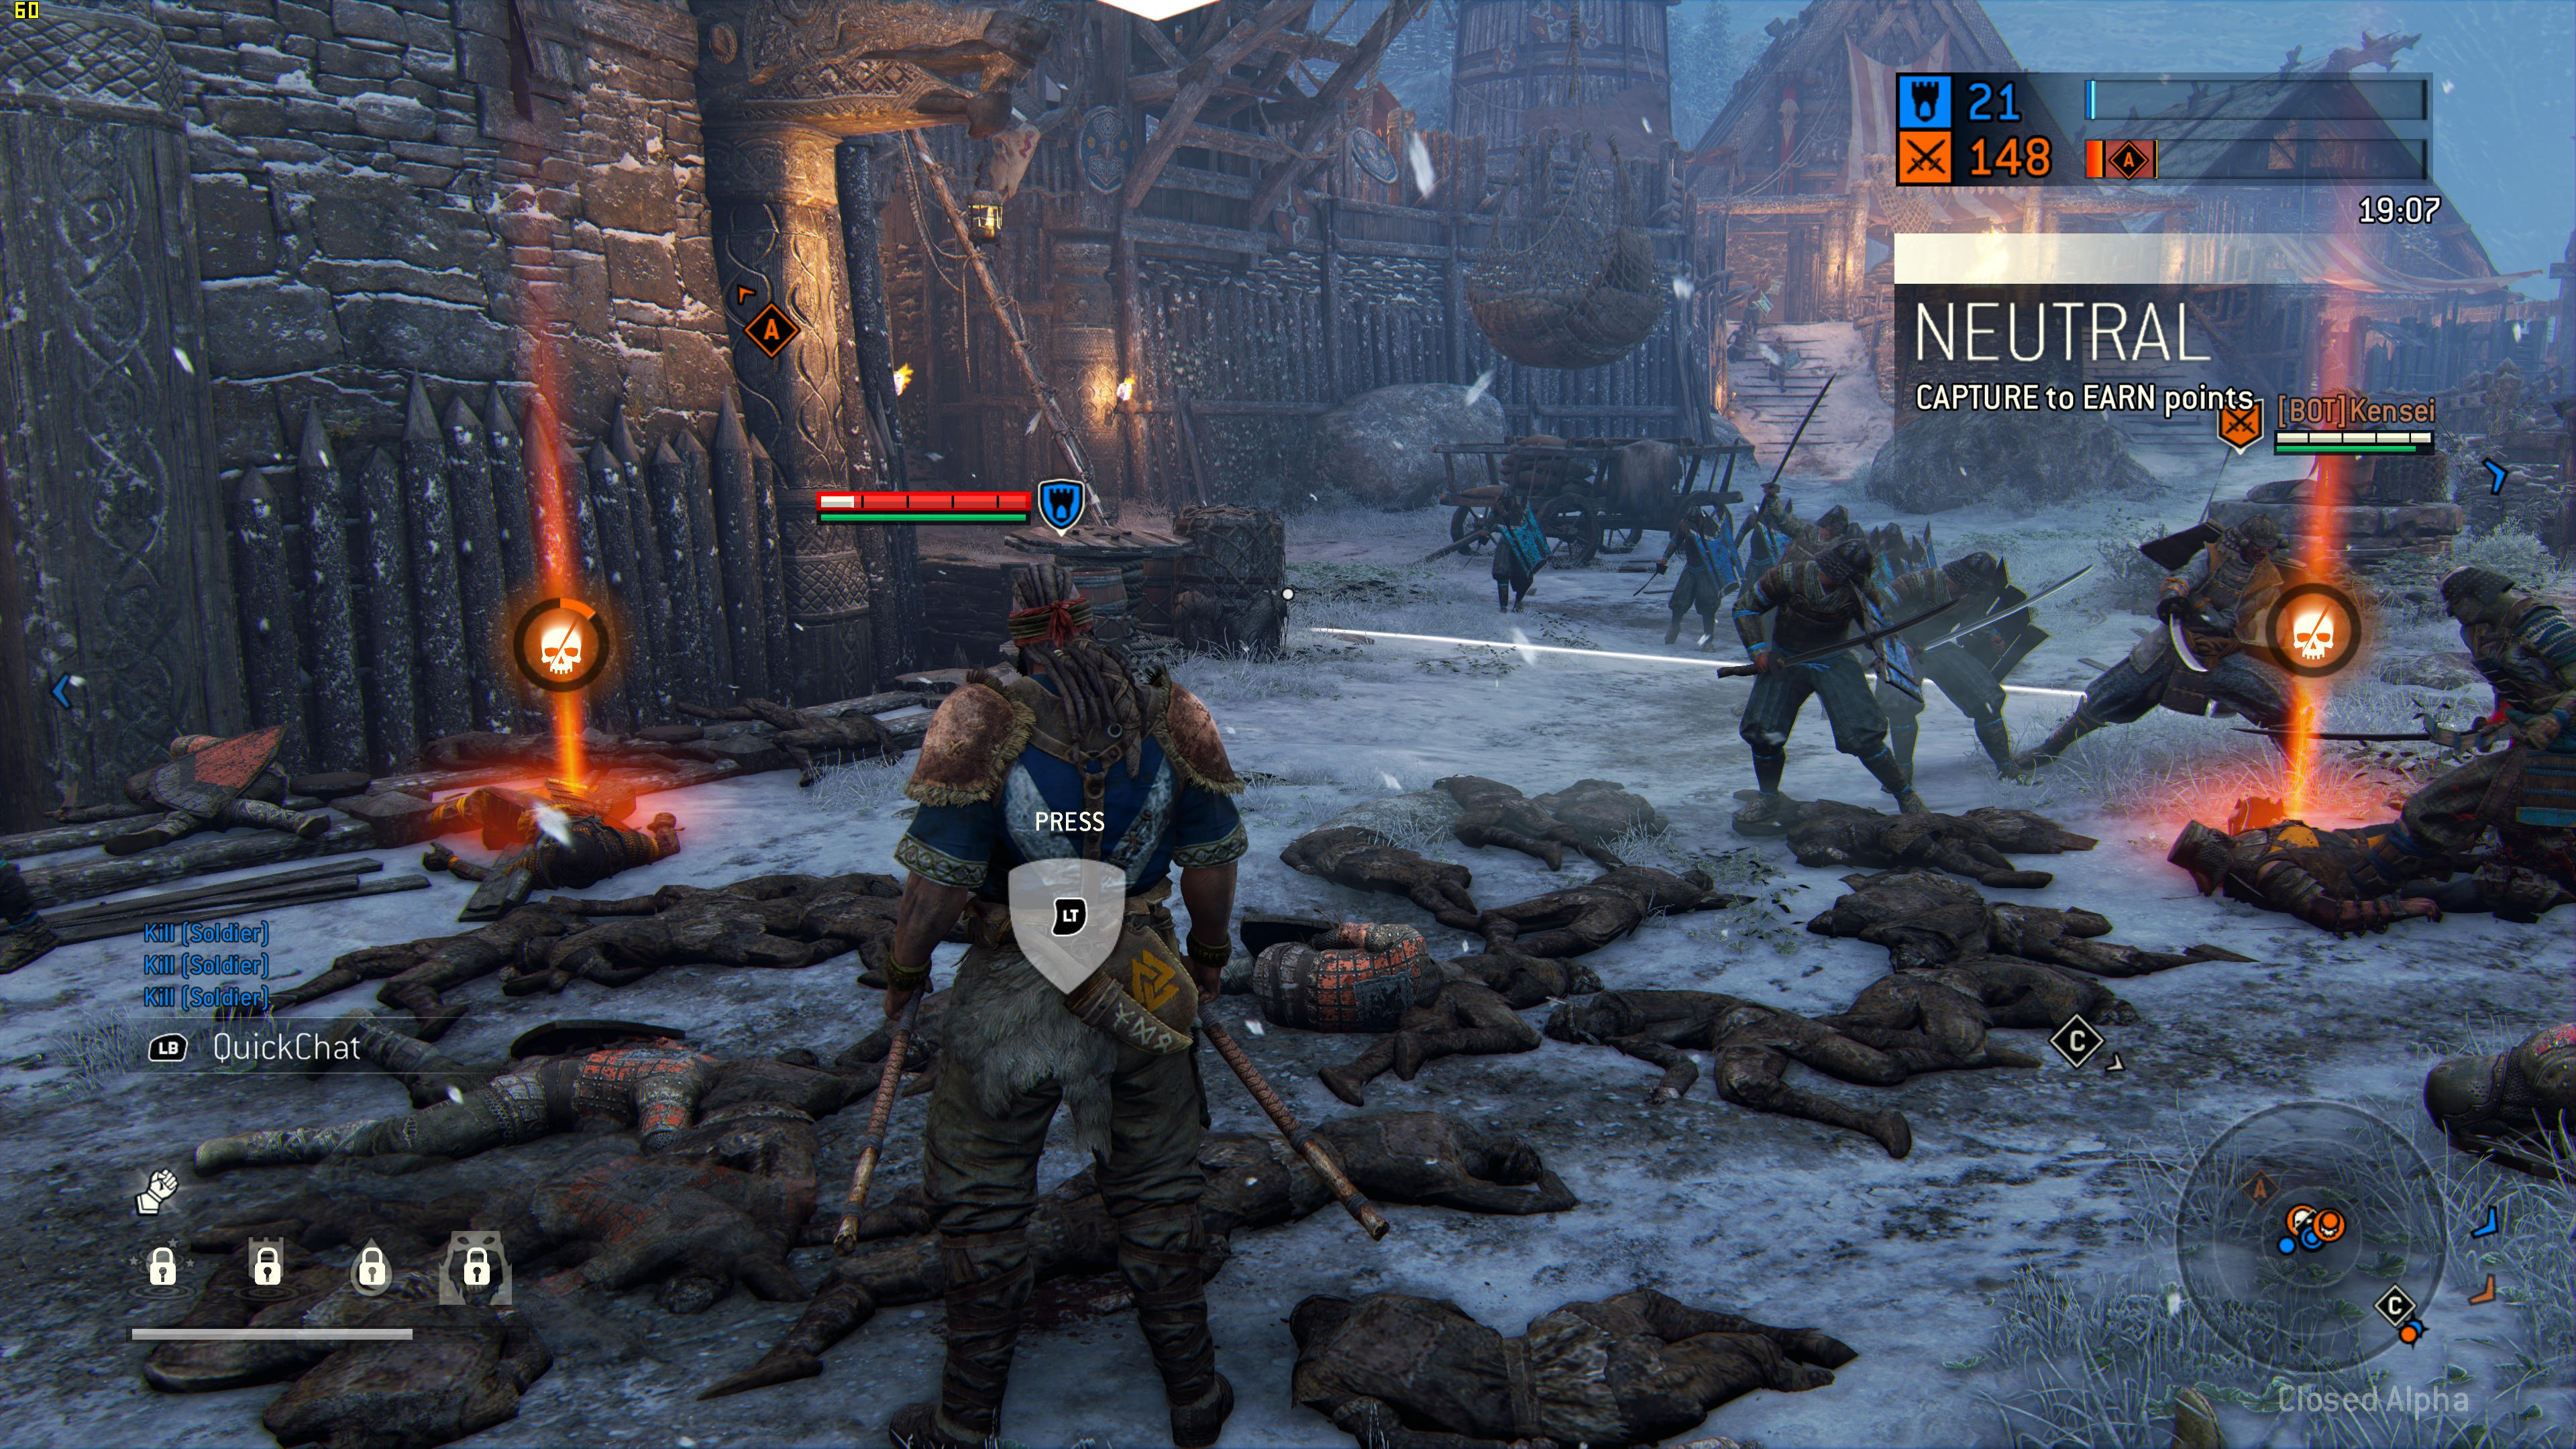 ForHonor-GTX-1080-OC-2160p-pcgh